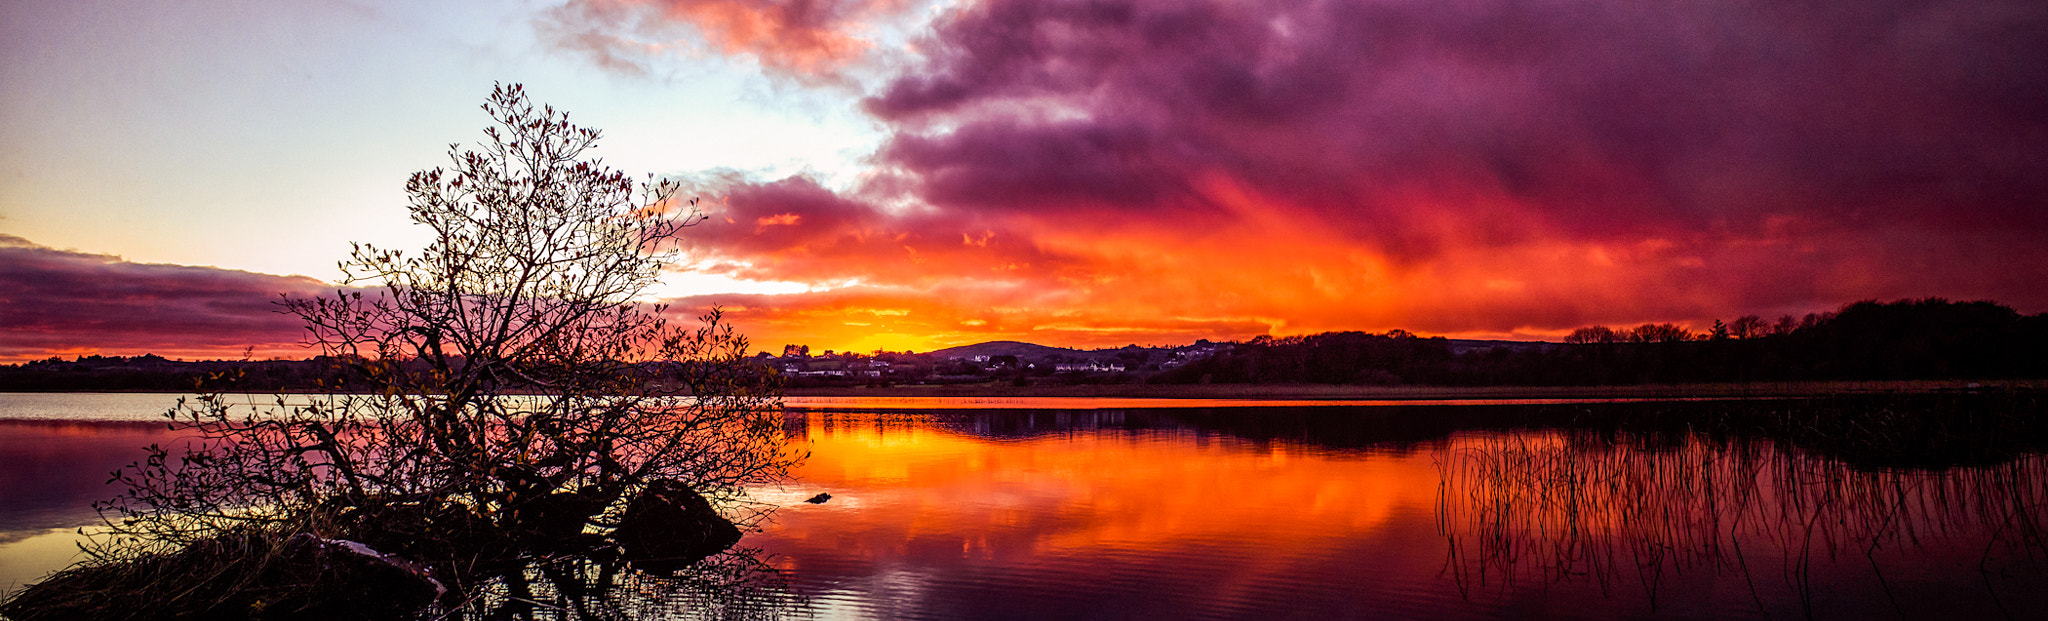 Photograph Red Sky at Night by Gavin Hartigan on 500px